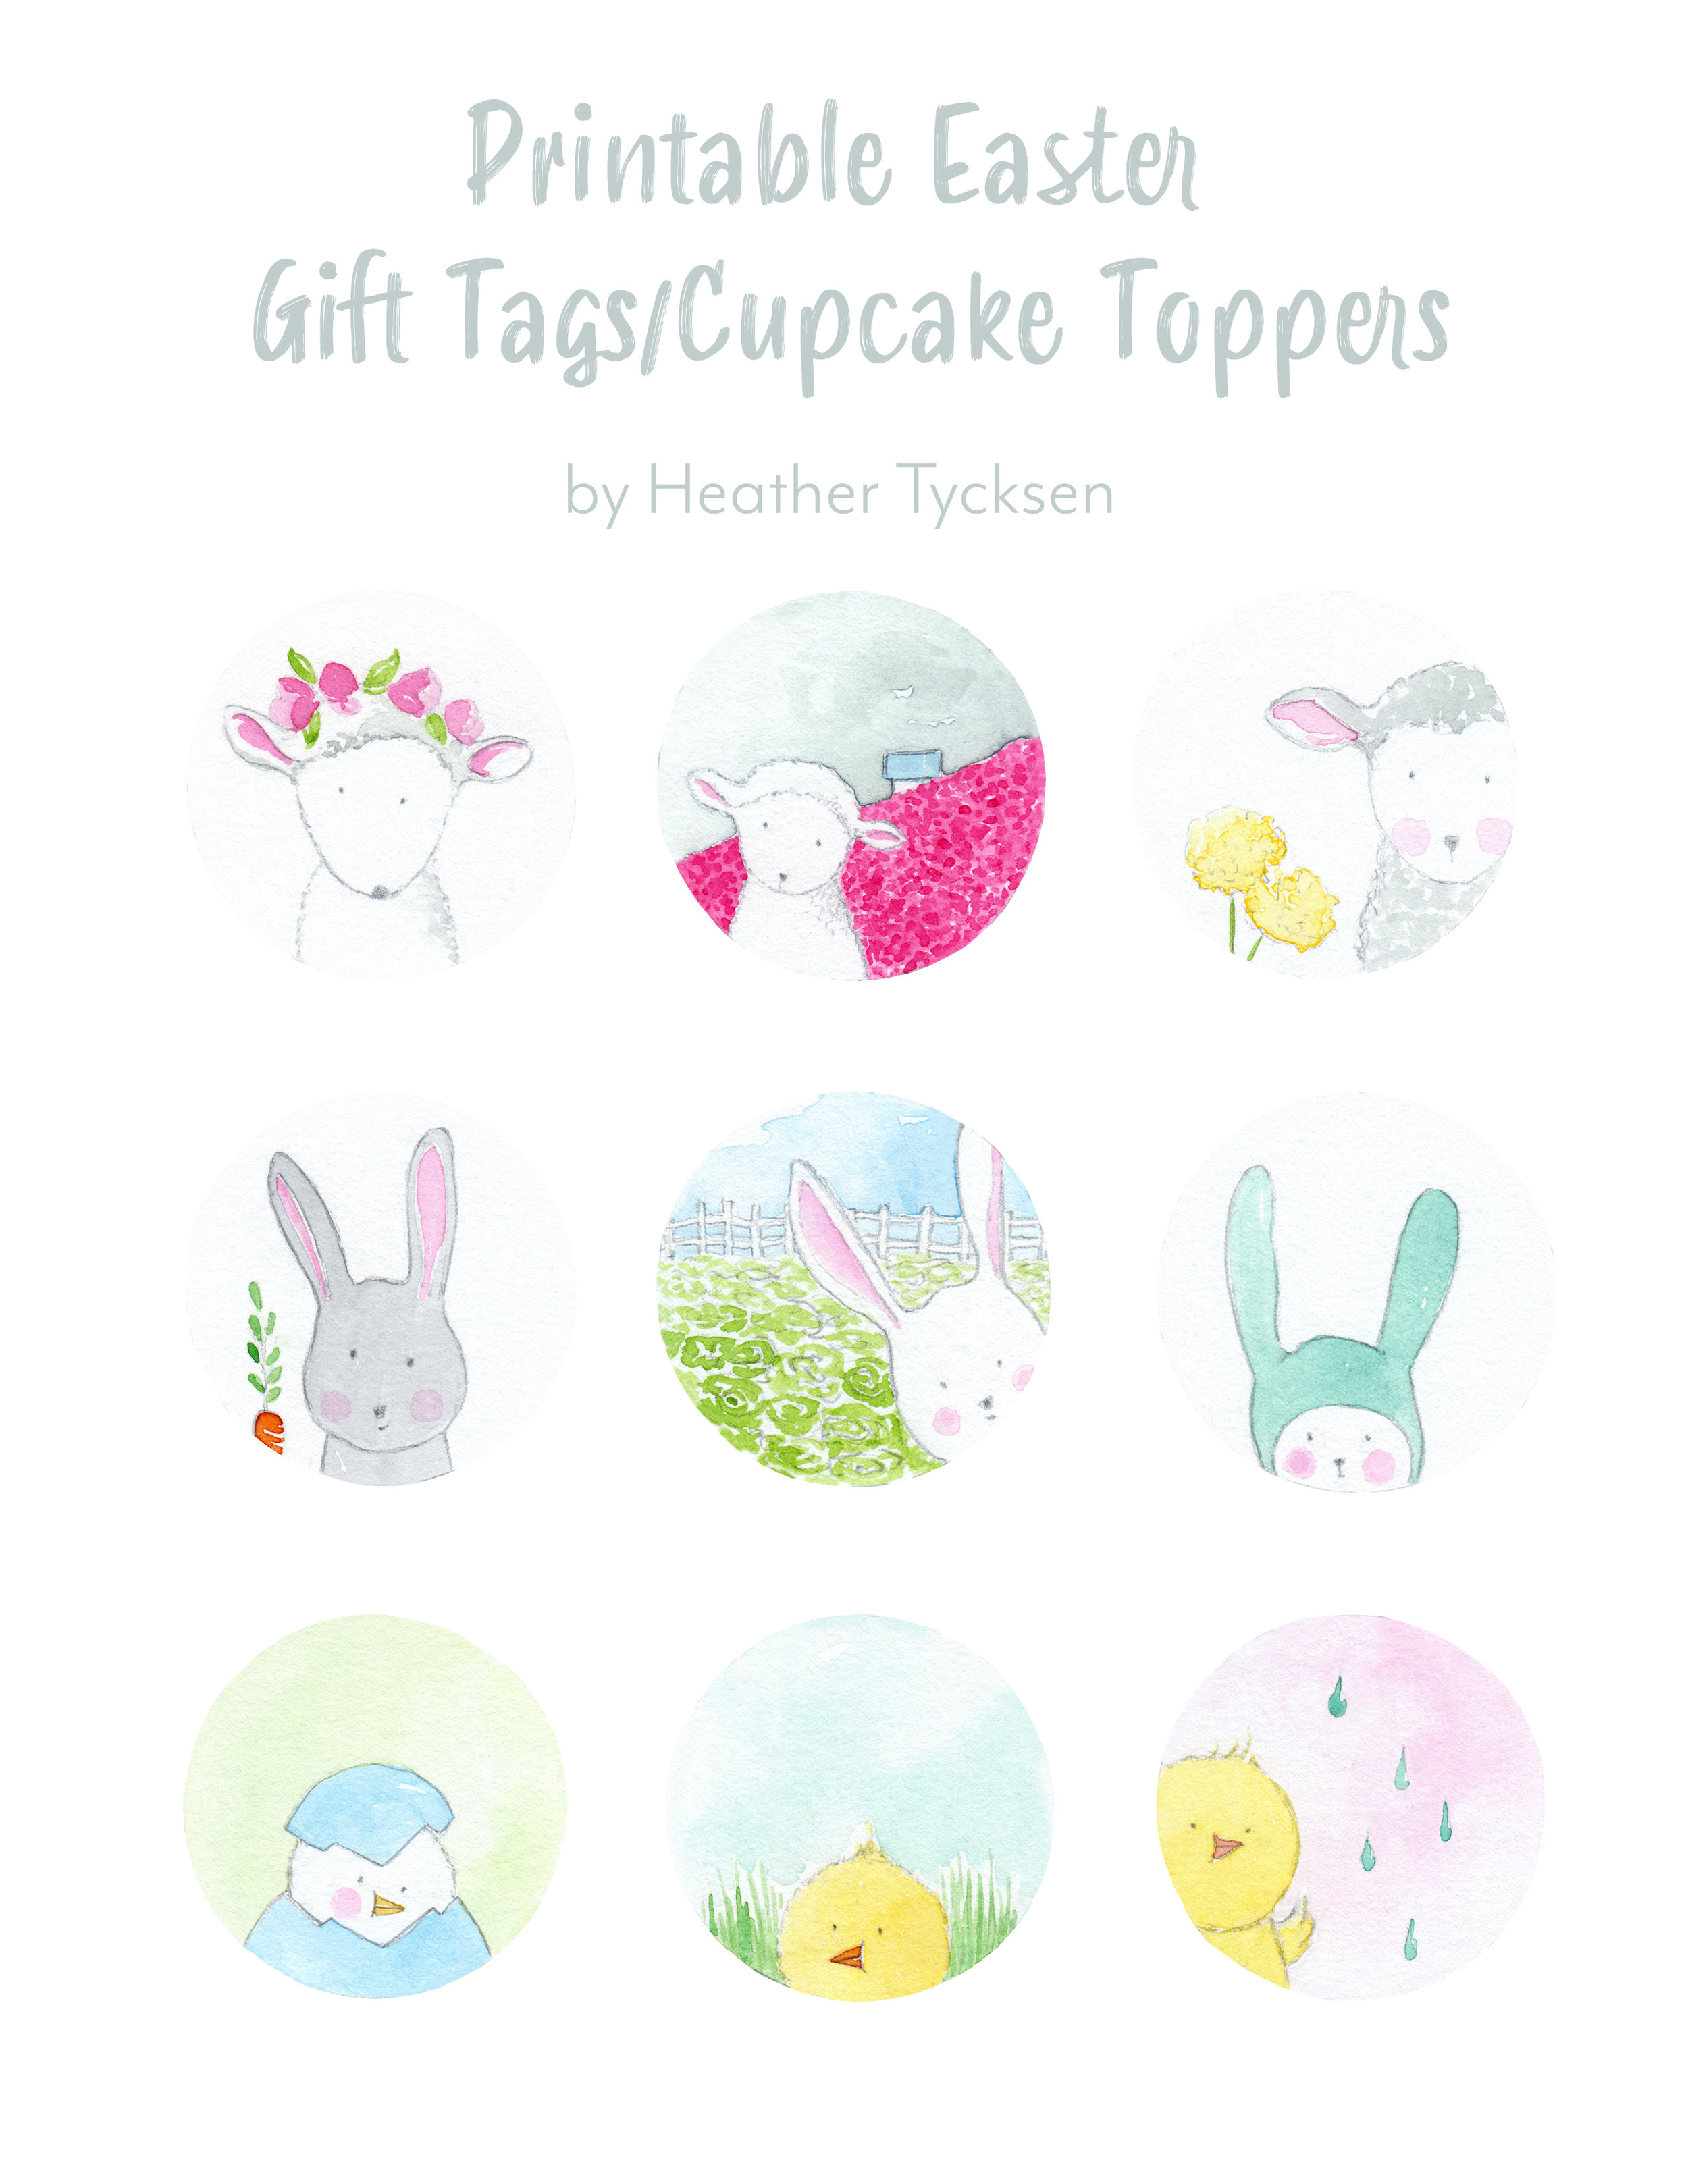 picture about Printable Easter Tags called PRINTABLE Easter Reward Tags/Cupcake Toppers Heather Tycksen